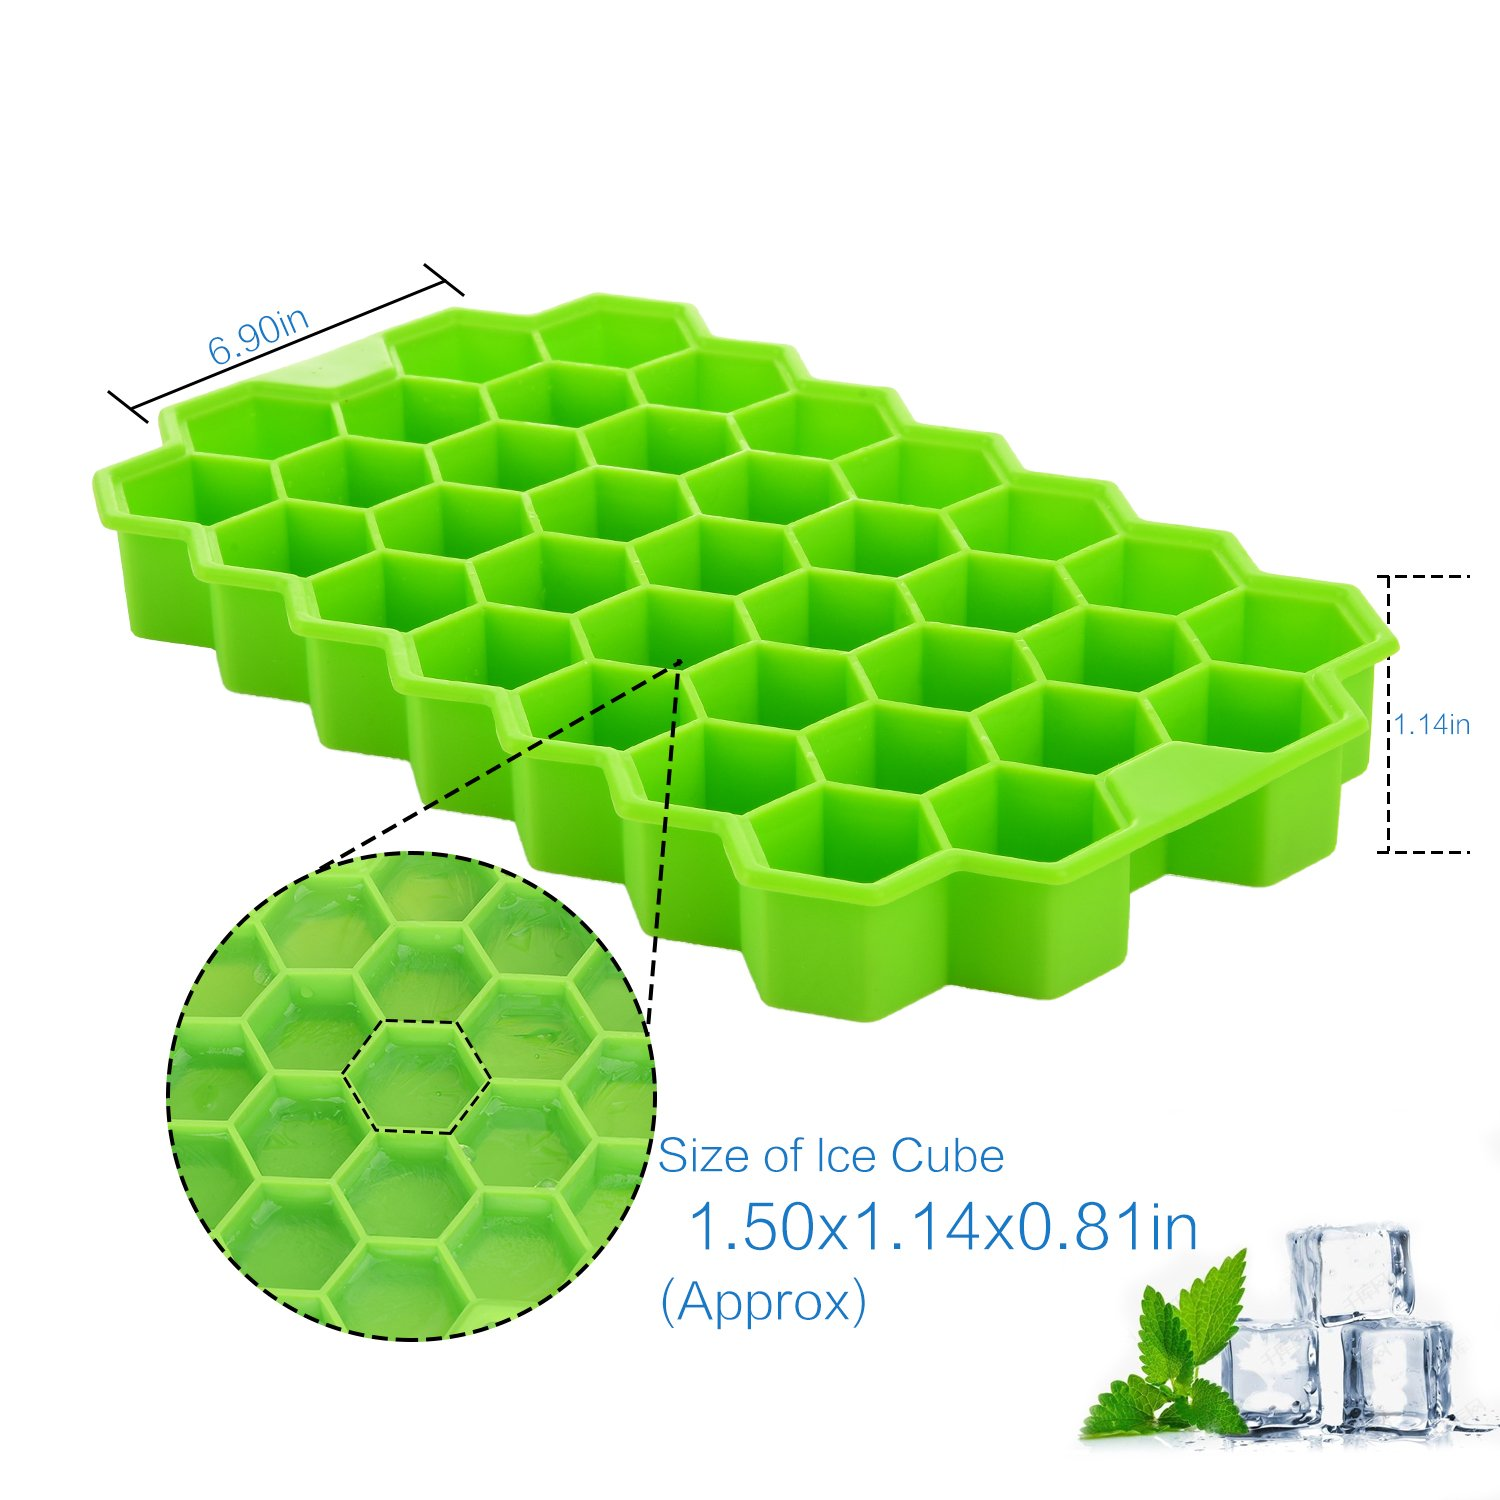 Ice Cube Trays with Lids,Bomstar 2 Pack Food Grade Silica Gel Flexible 74 Ice Trays with Spill-Resistant Removable Lid,BPA Free Ice Cube Molds for Whiskey Storage,Cocktail,Beverages by BomStar (Image #5)